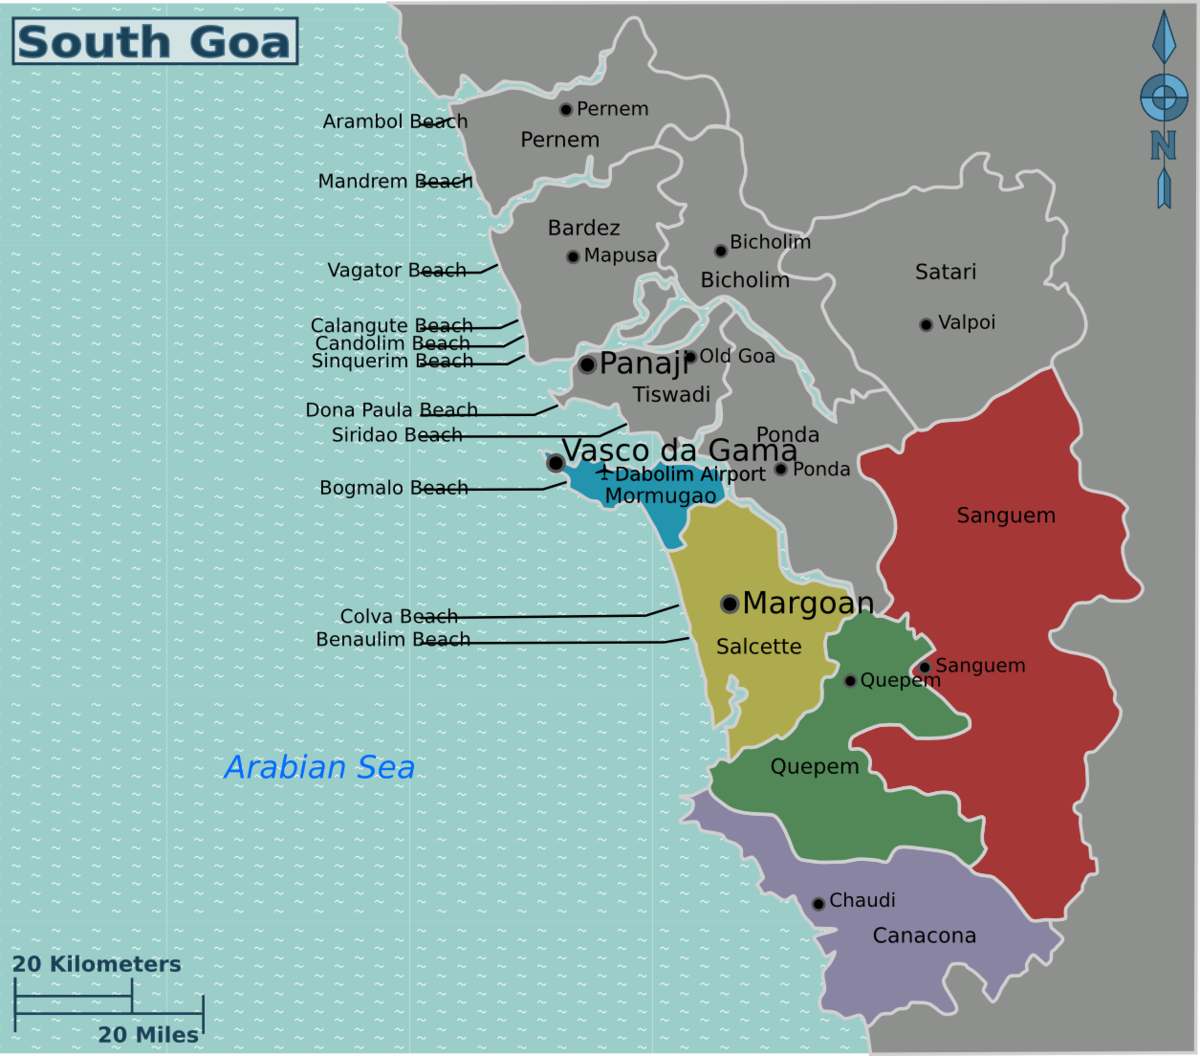 South Goa – Travel guide at Wikivoyage